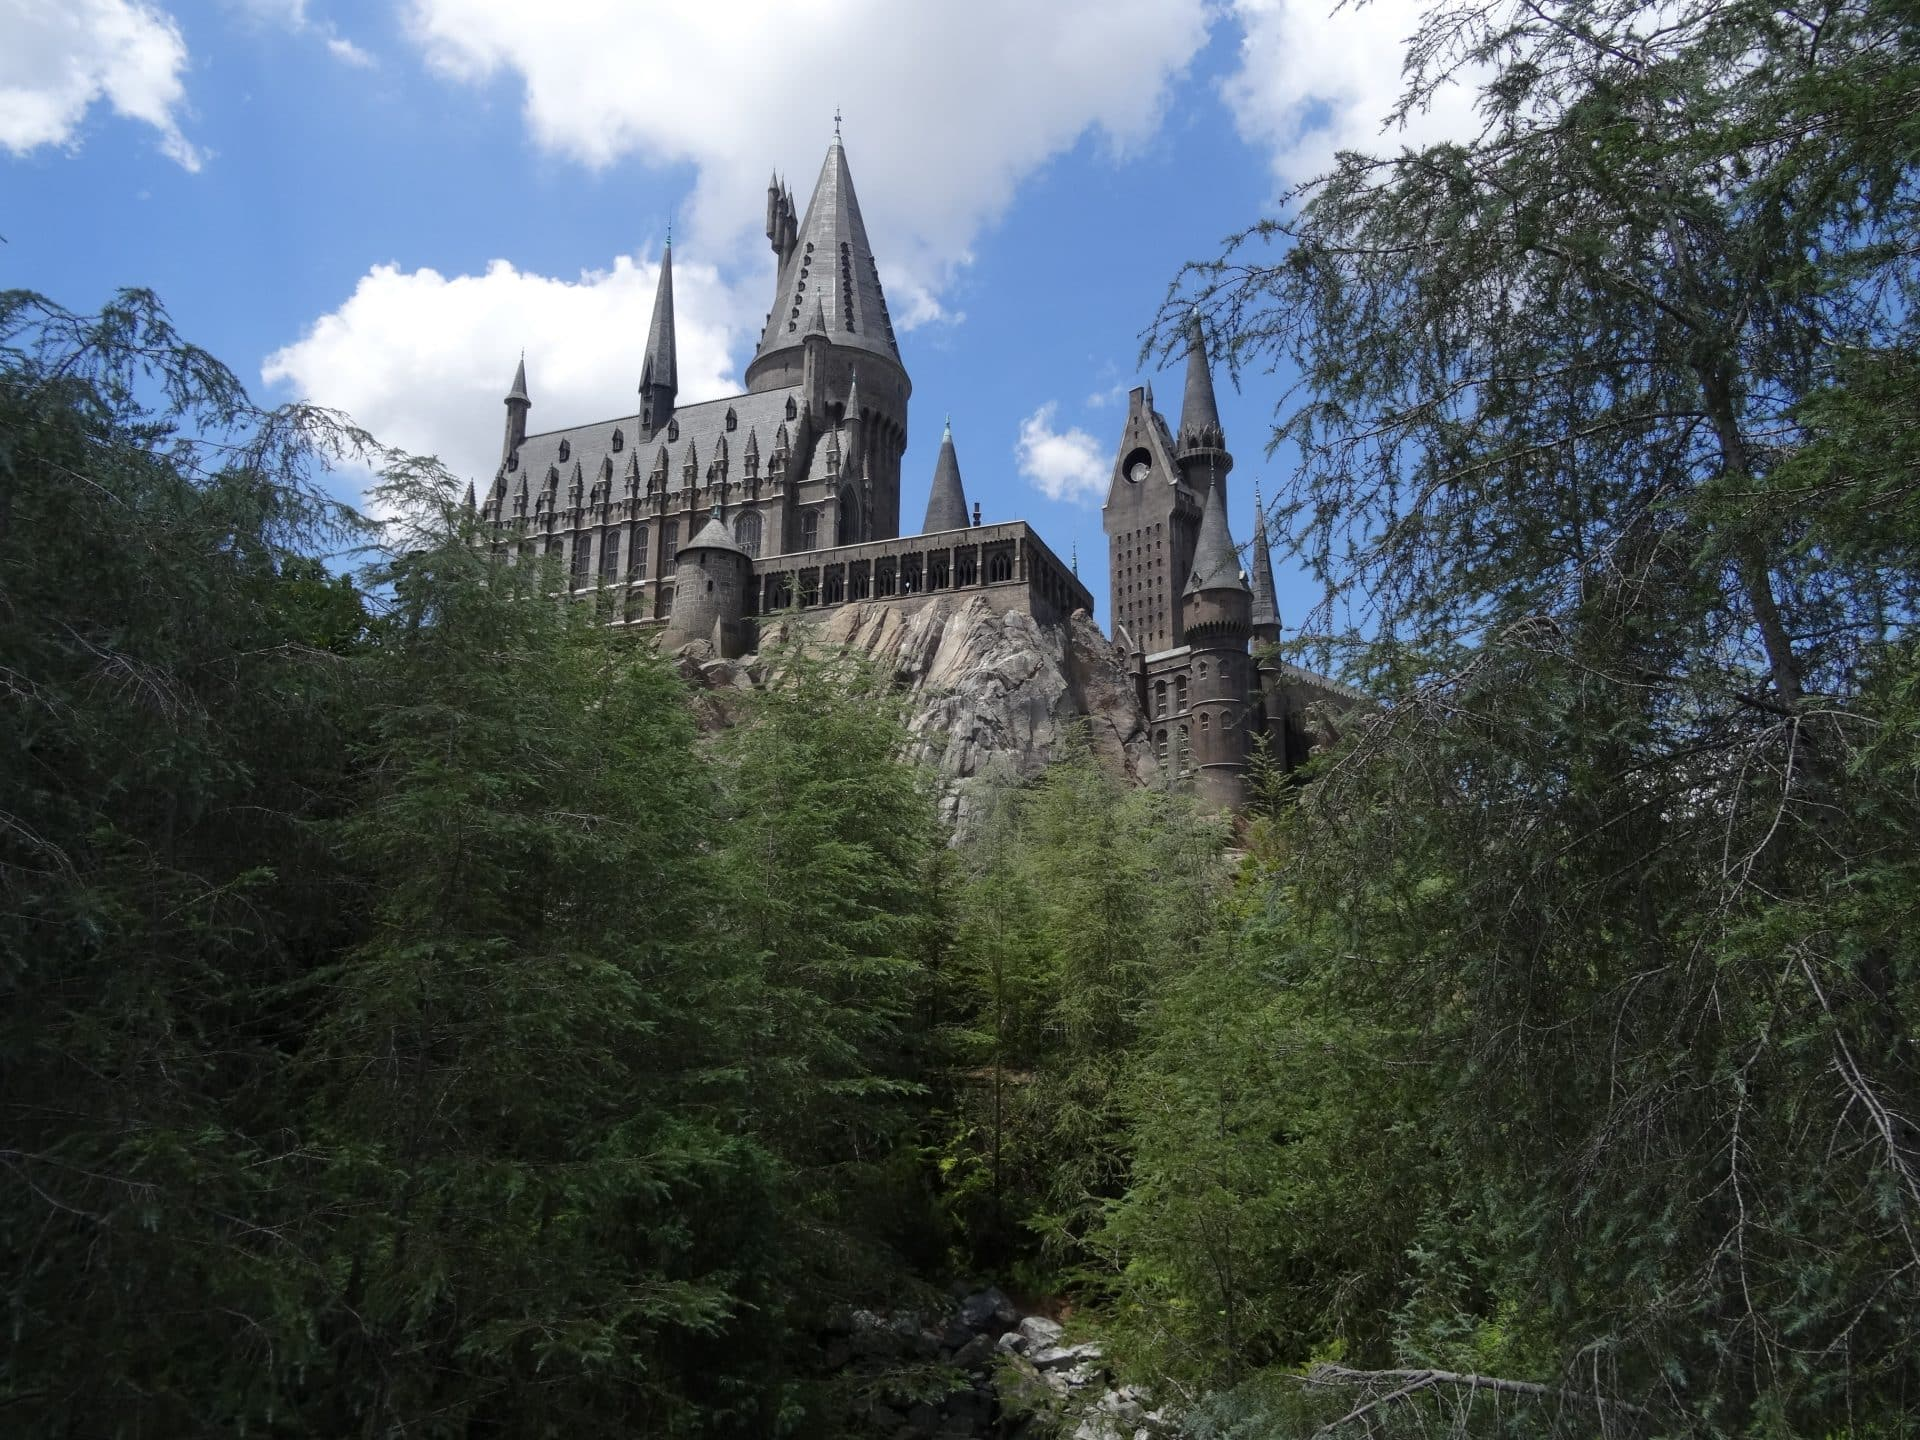 The Wizarding World of Harry Potter road trip Floride